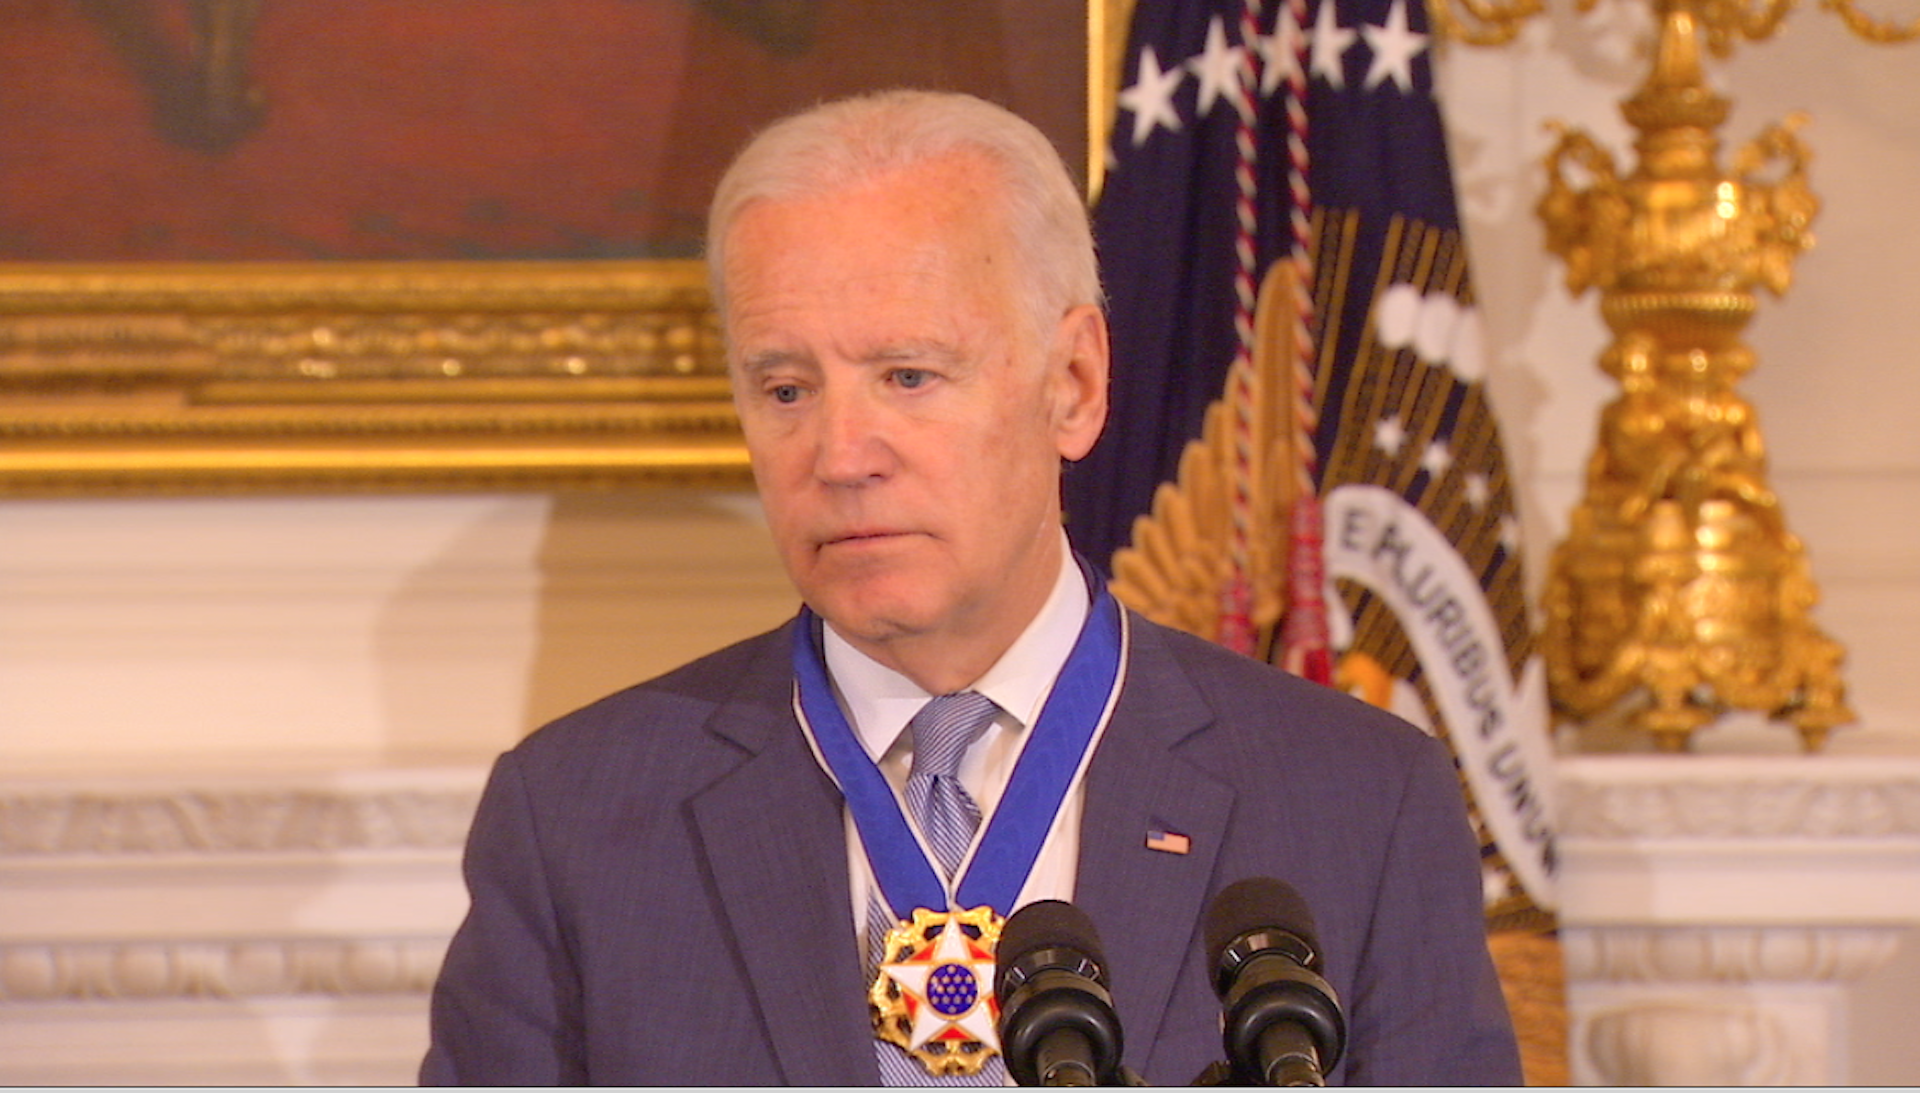 Obama surprises Joe Biden with the Presidential Medal of Freedom